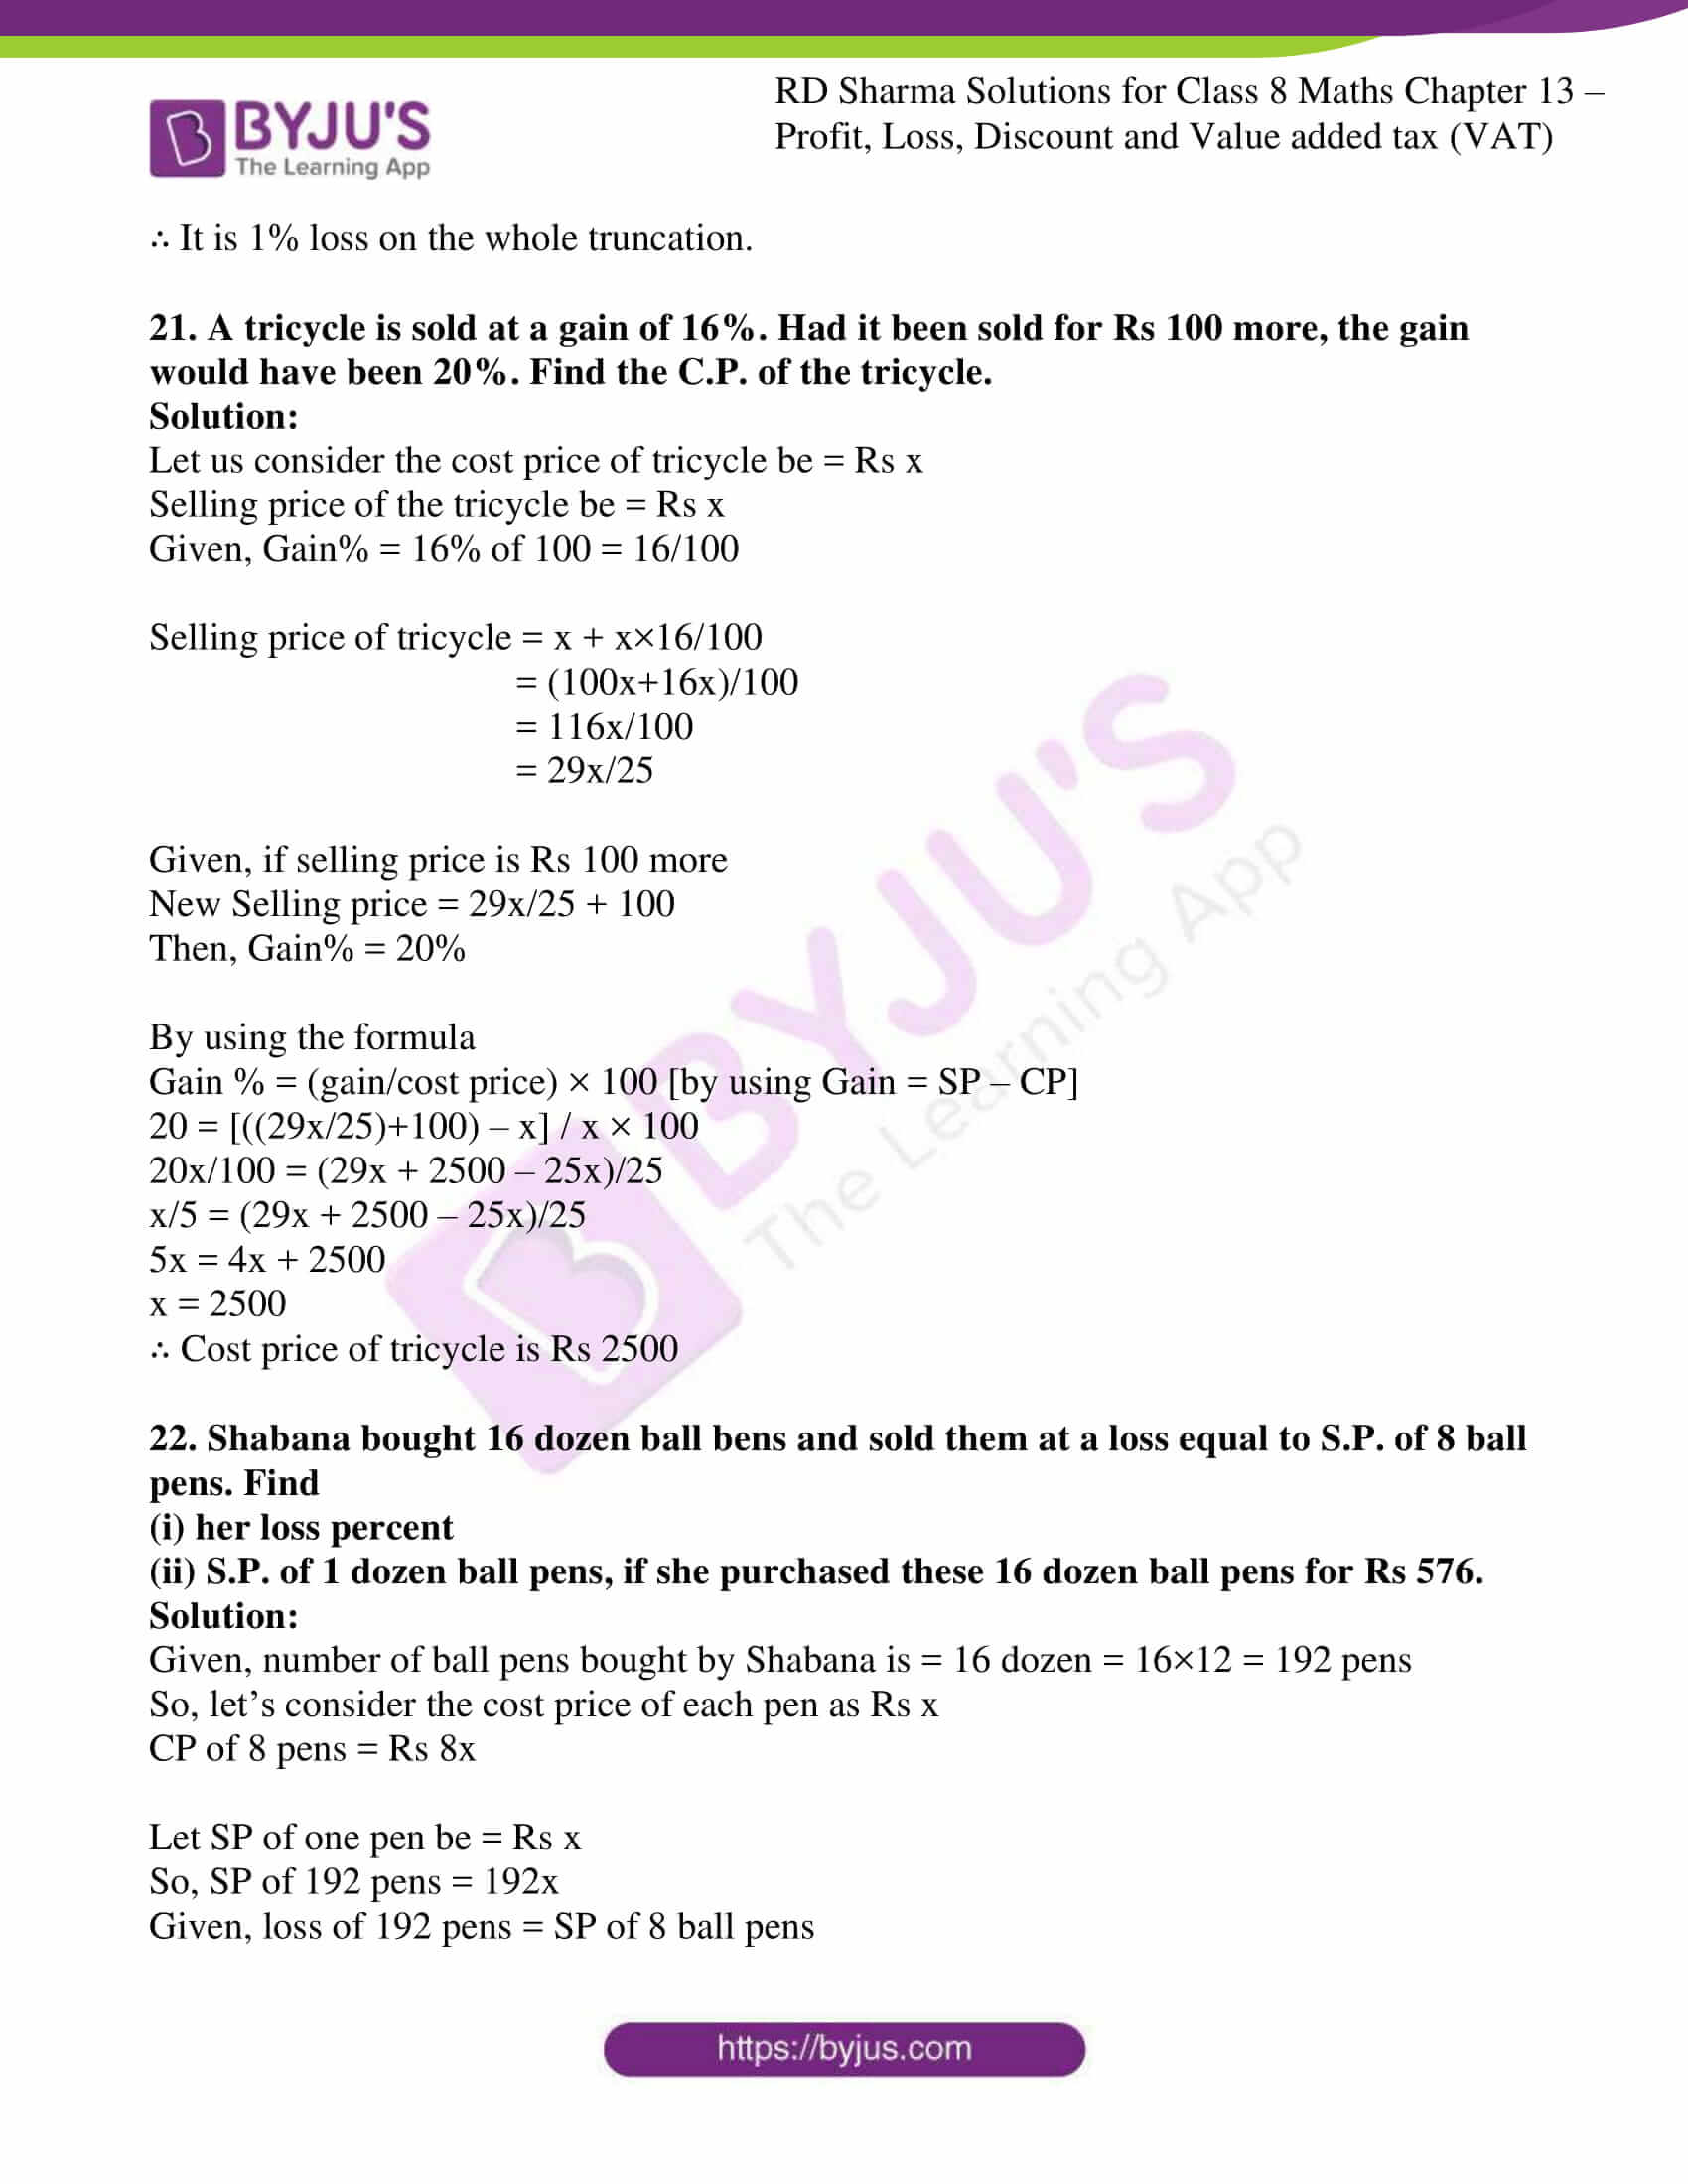 rd sharma class 8 maths chapter 13 exercise 13.1